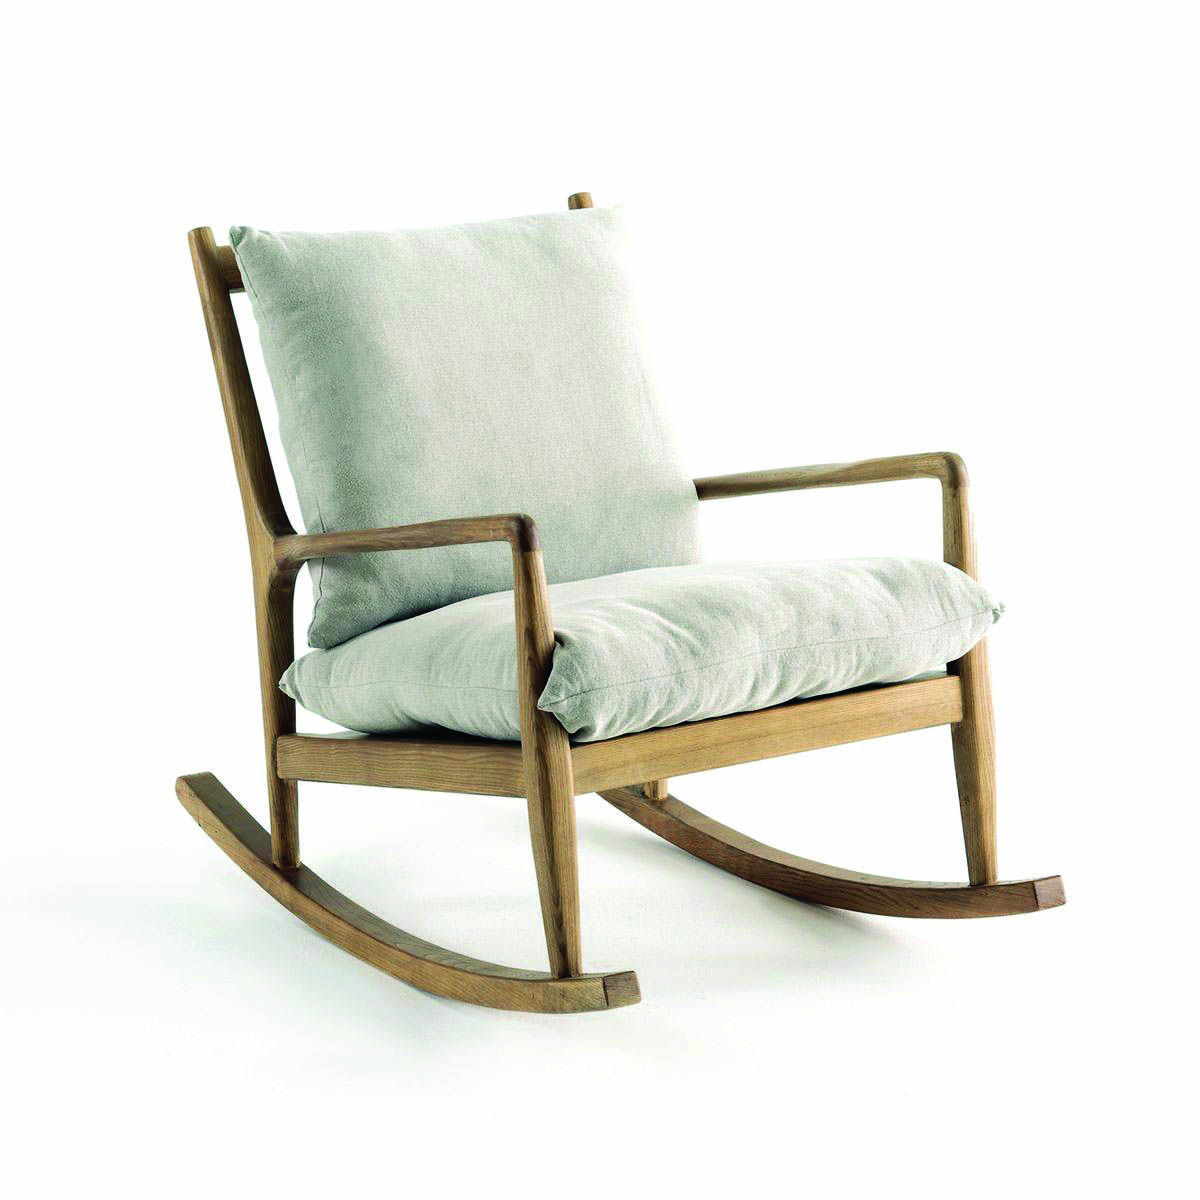 Fascinating Rocking Chair Footstool Made Easy   The Sofa And For Harvey Mid Century Modern Fabric Rocking Chairs (View 12 of 20)